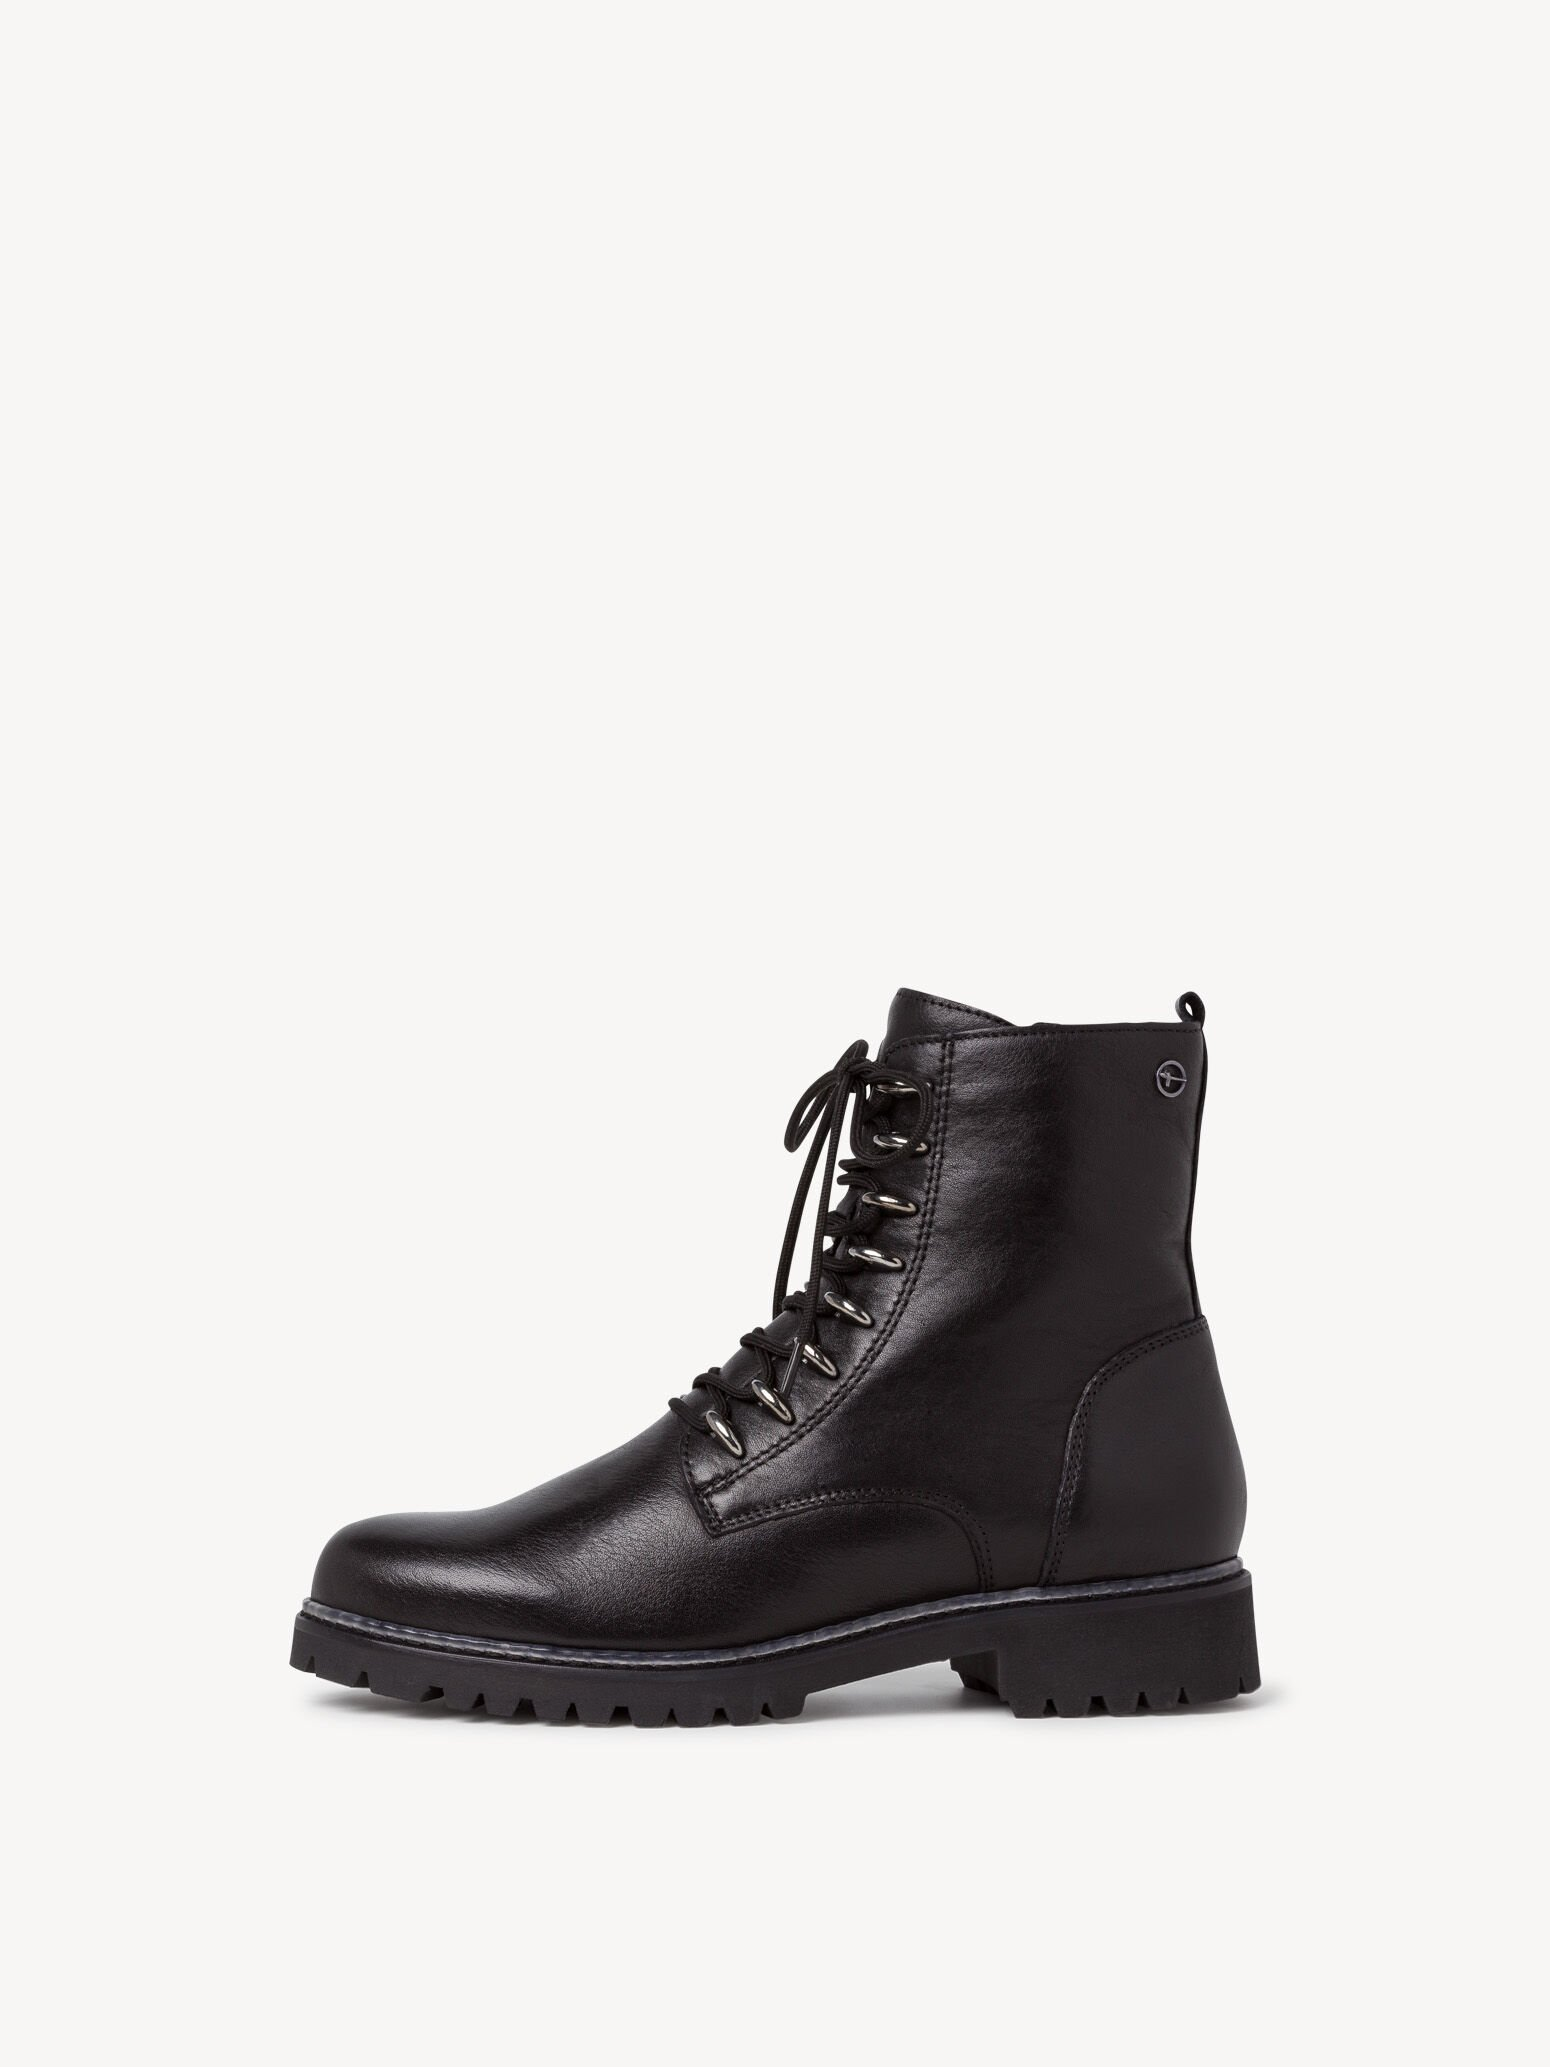 Leather Bootie 1-1-25234-25: Buy